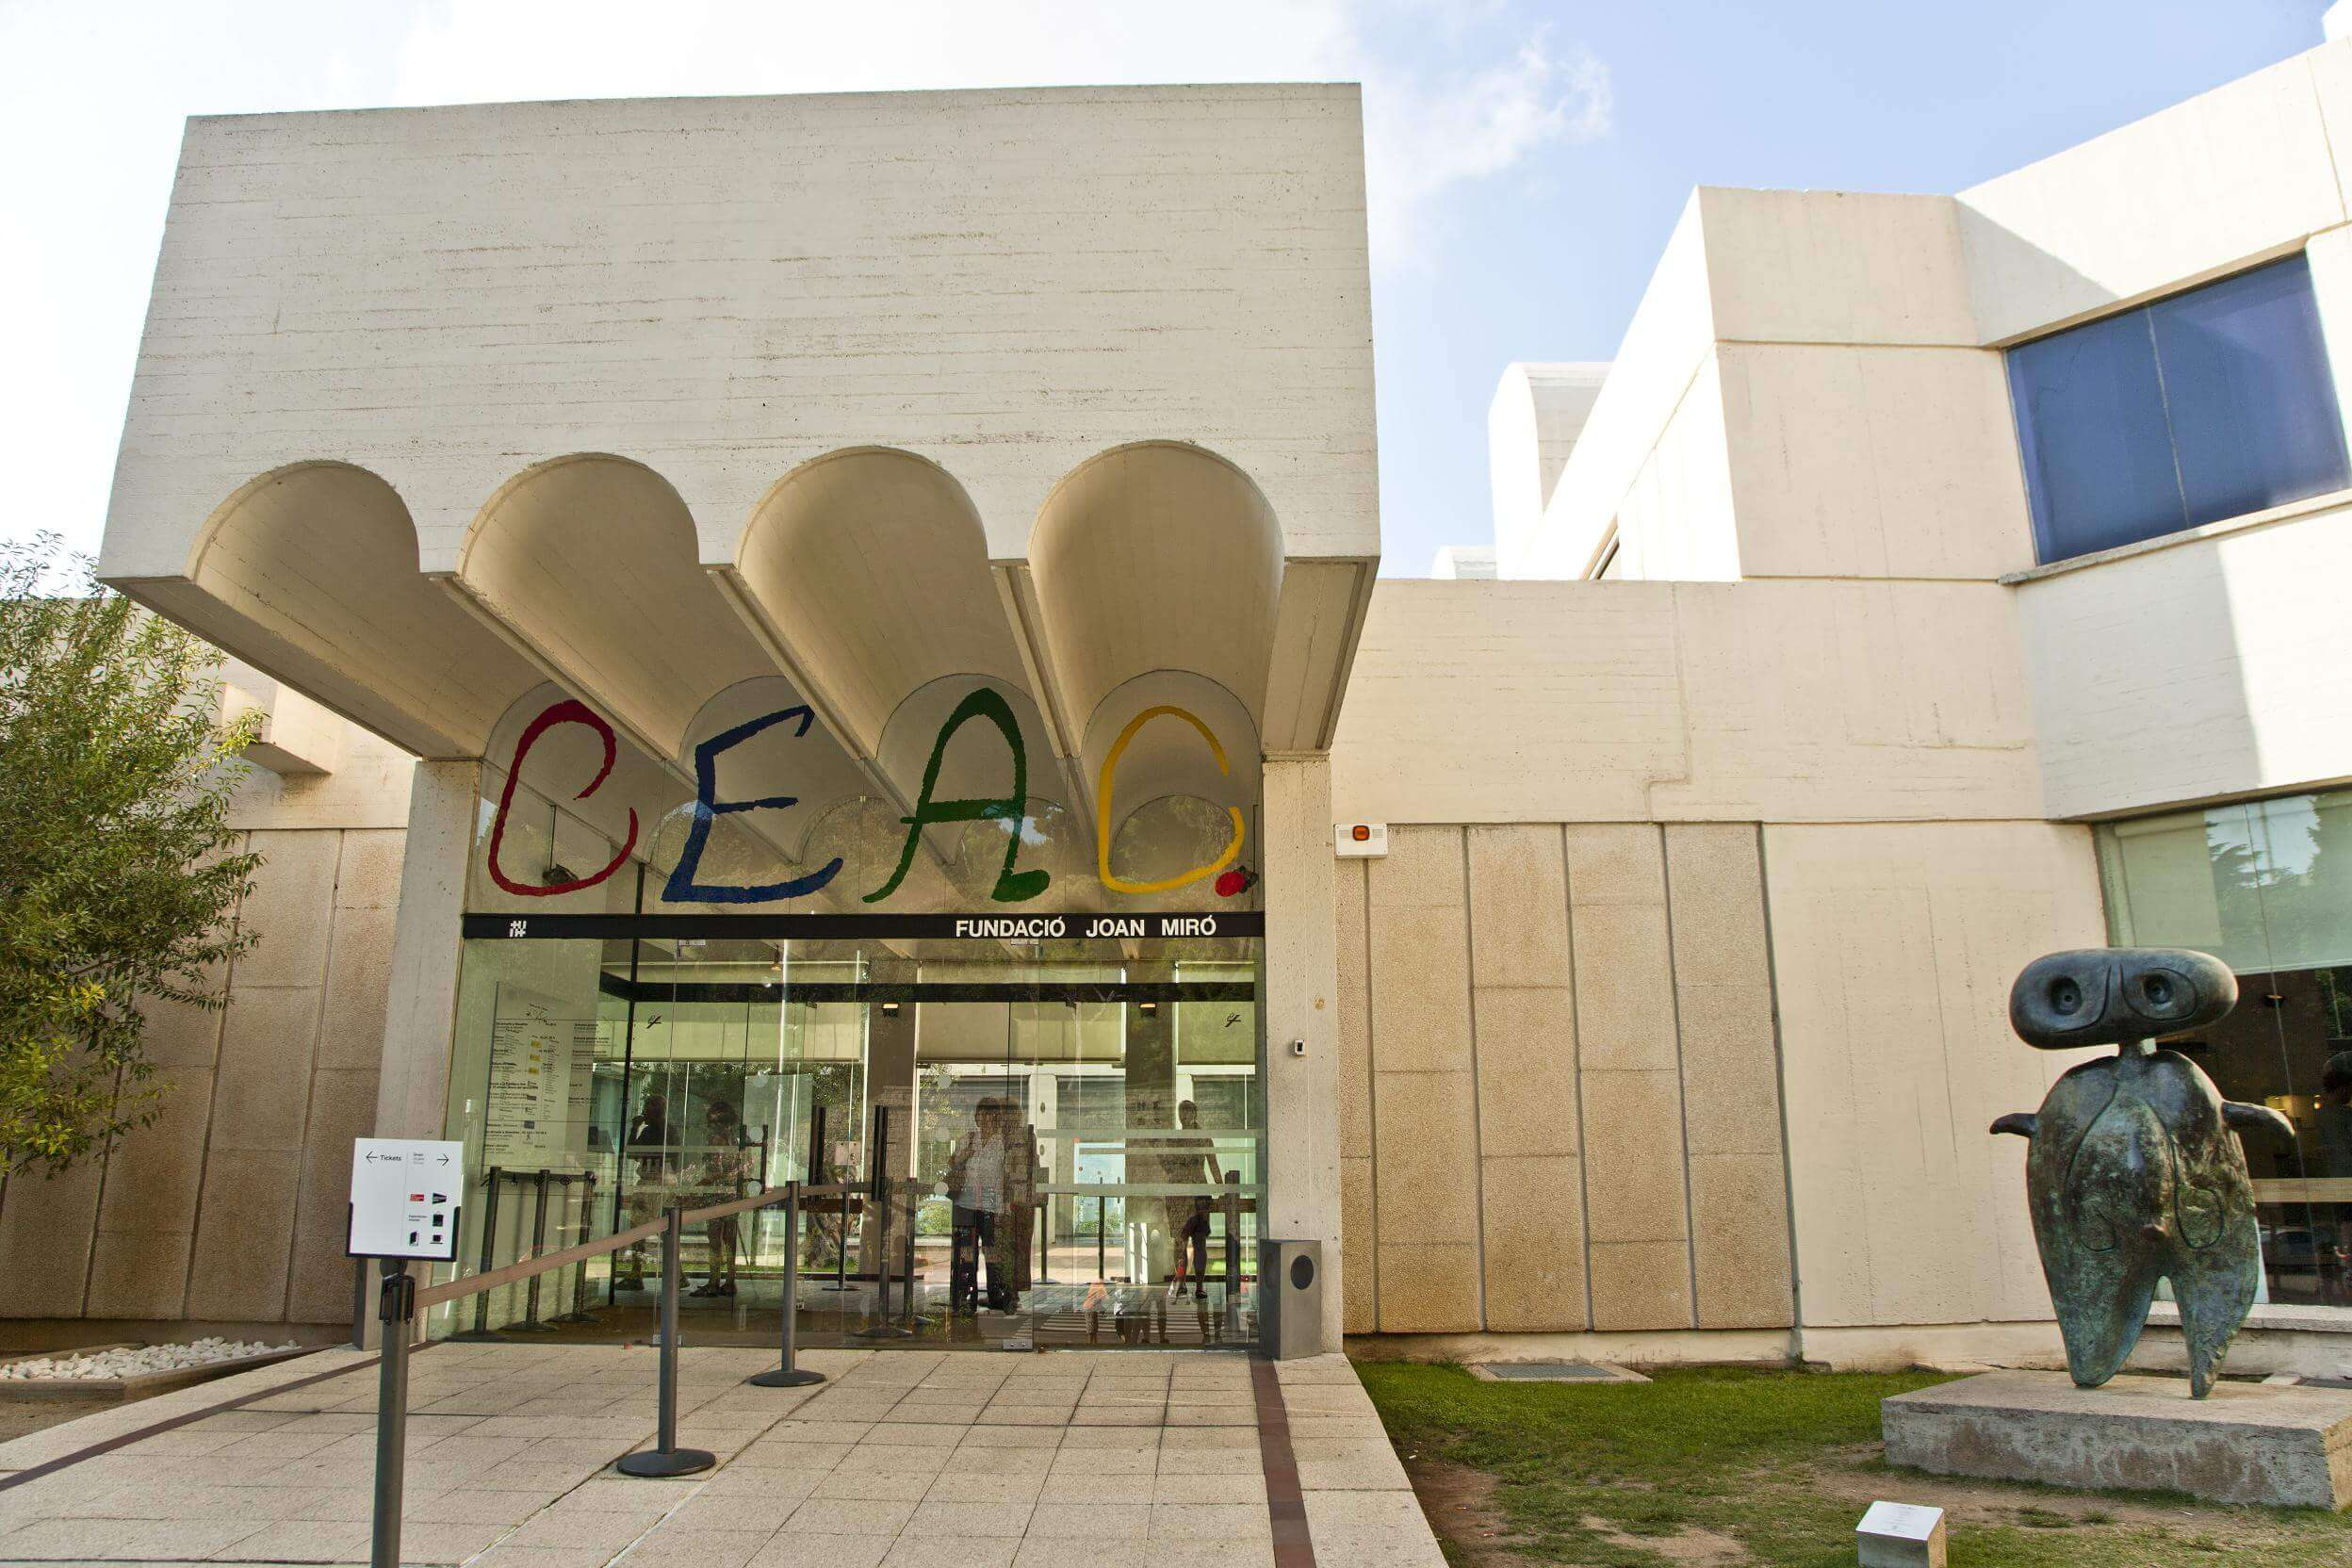 Fondation Joan Miro à Barcelone